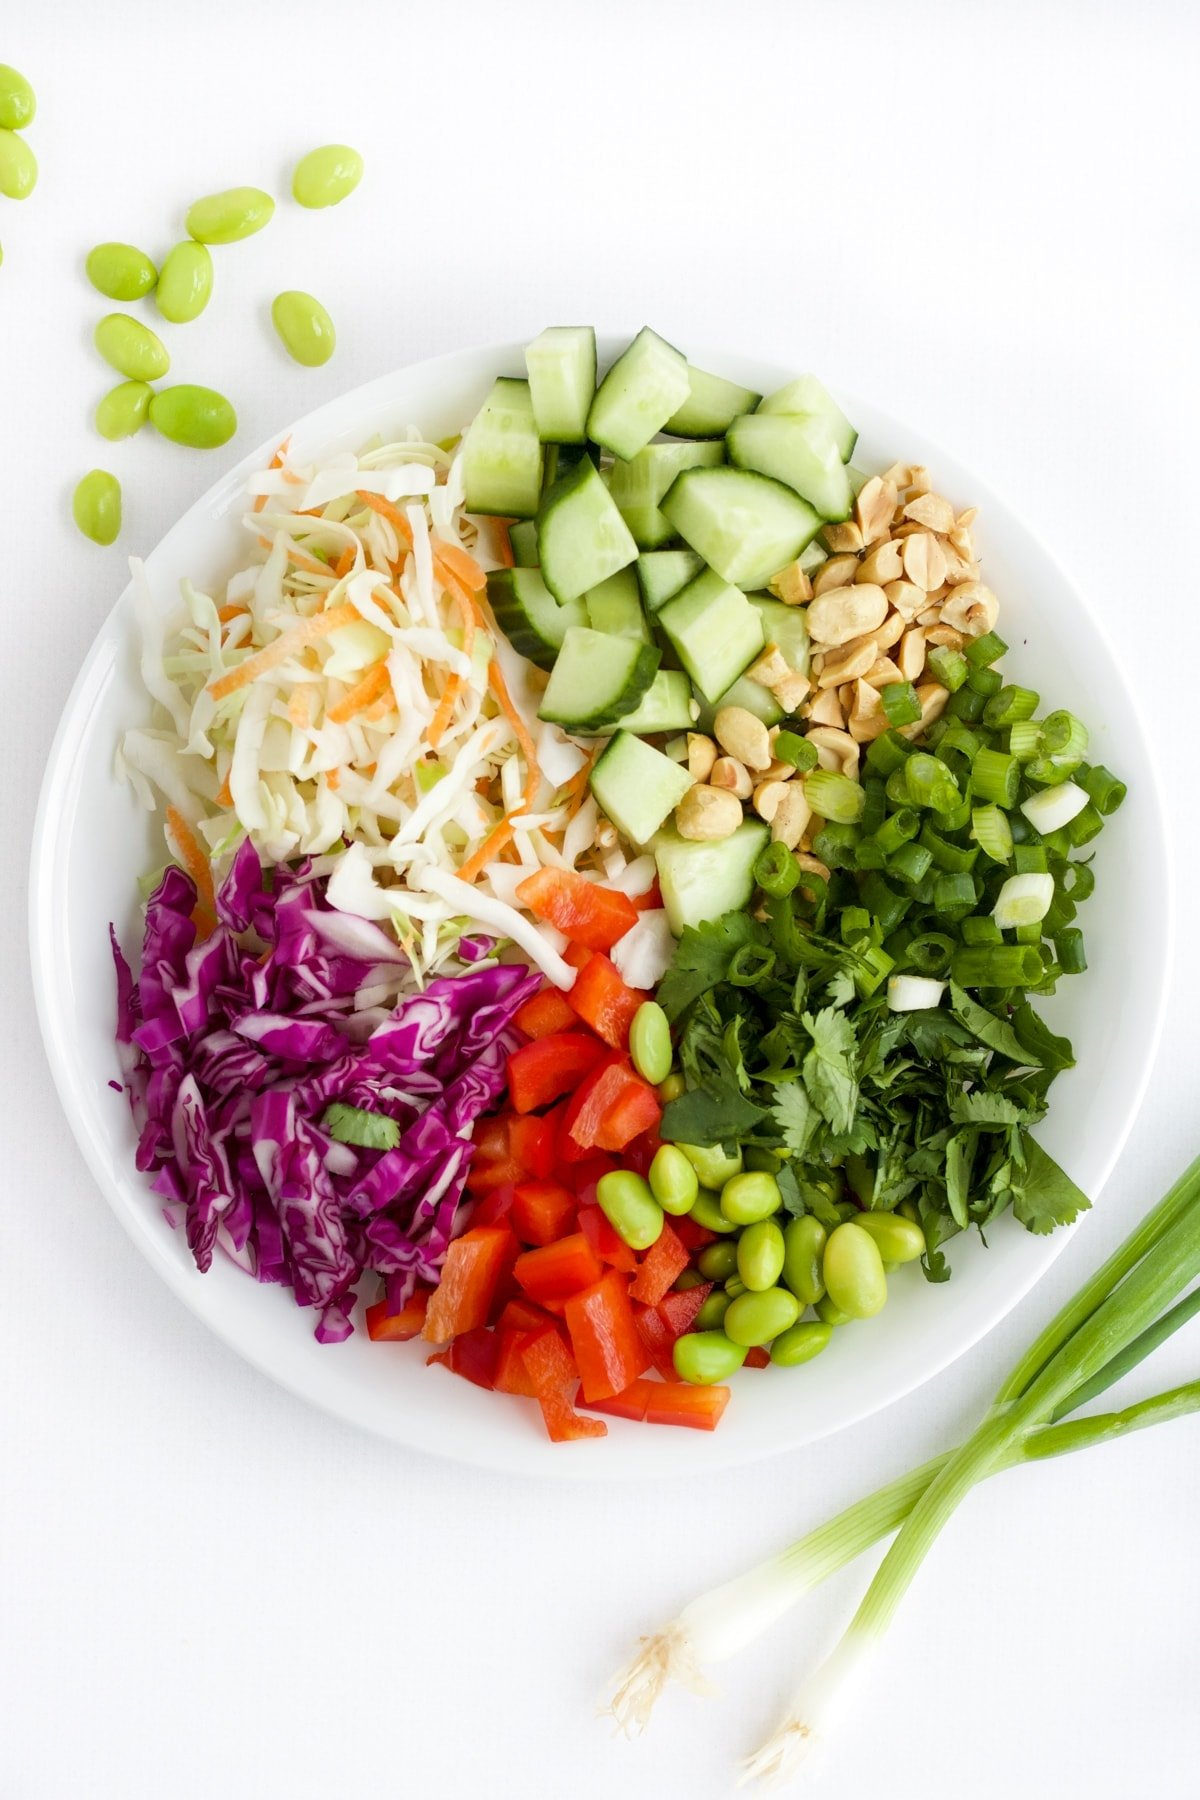 Ingredients for Thai Salad in a white bowl.